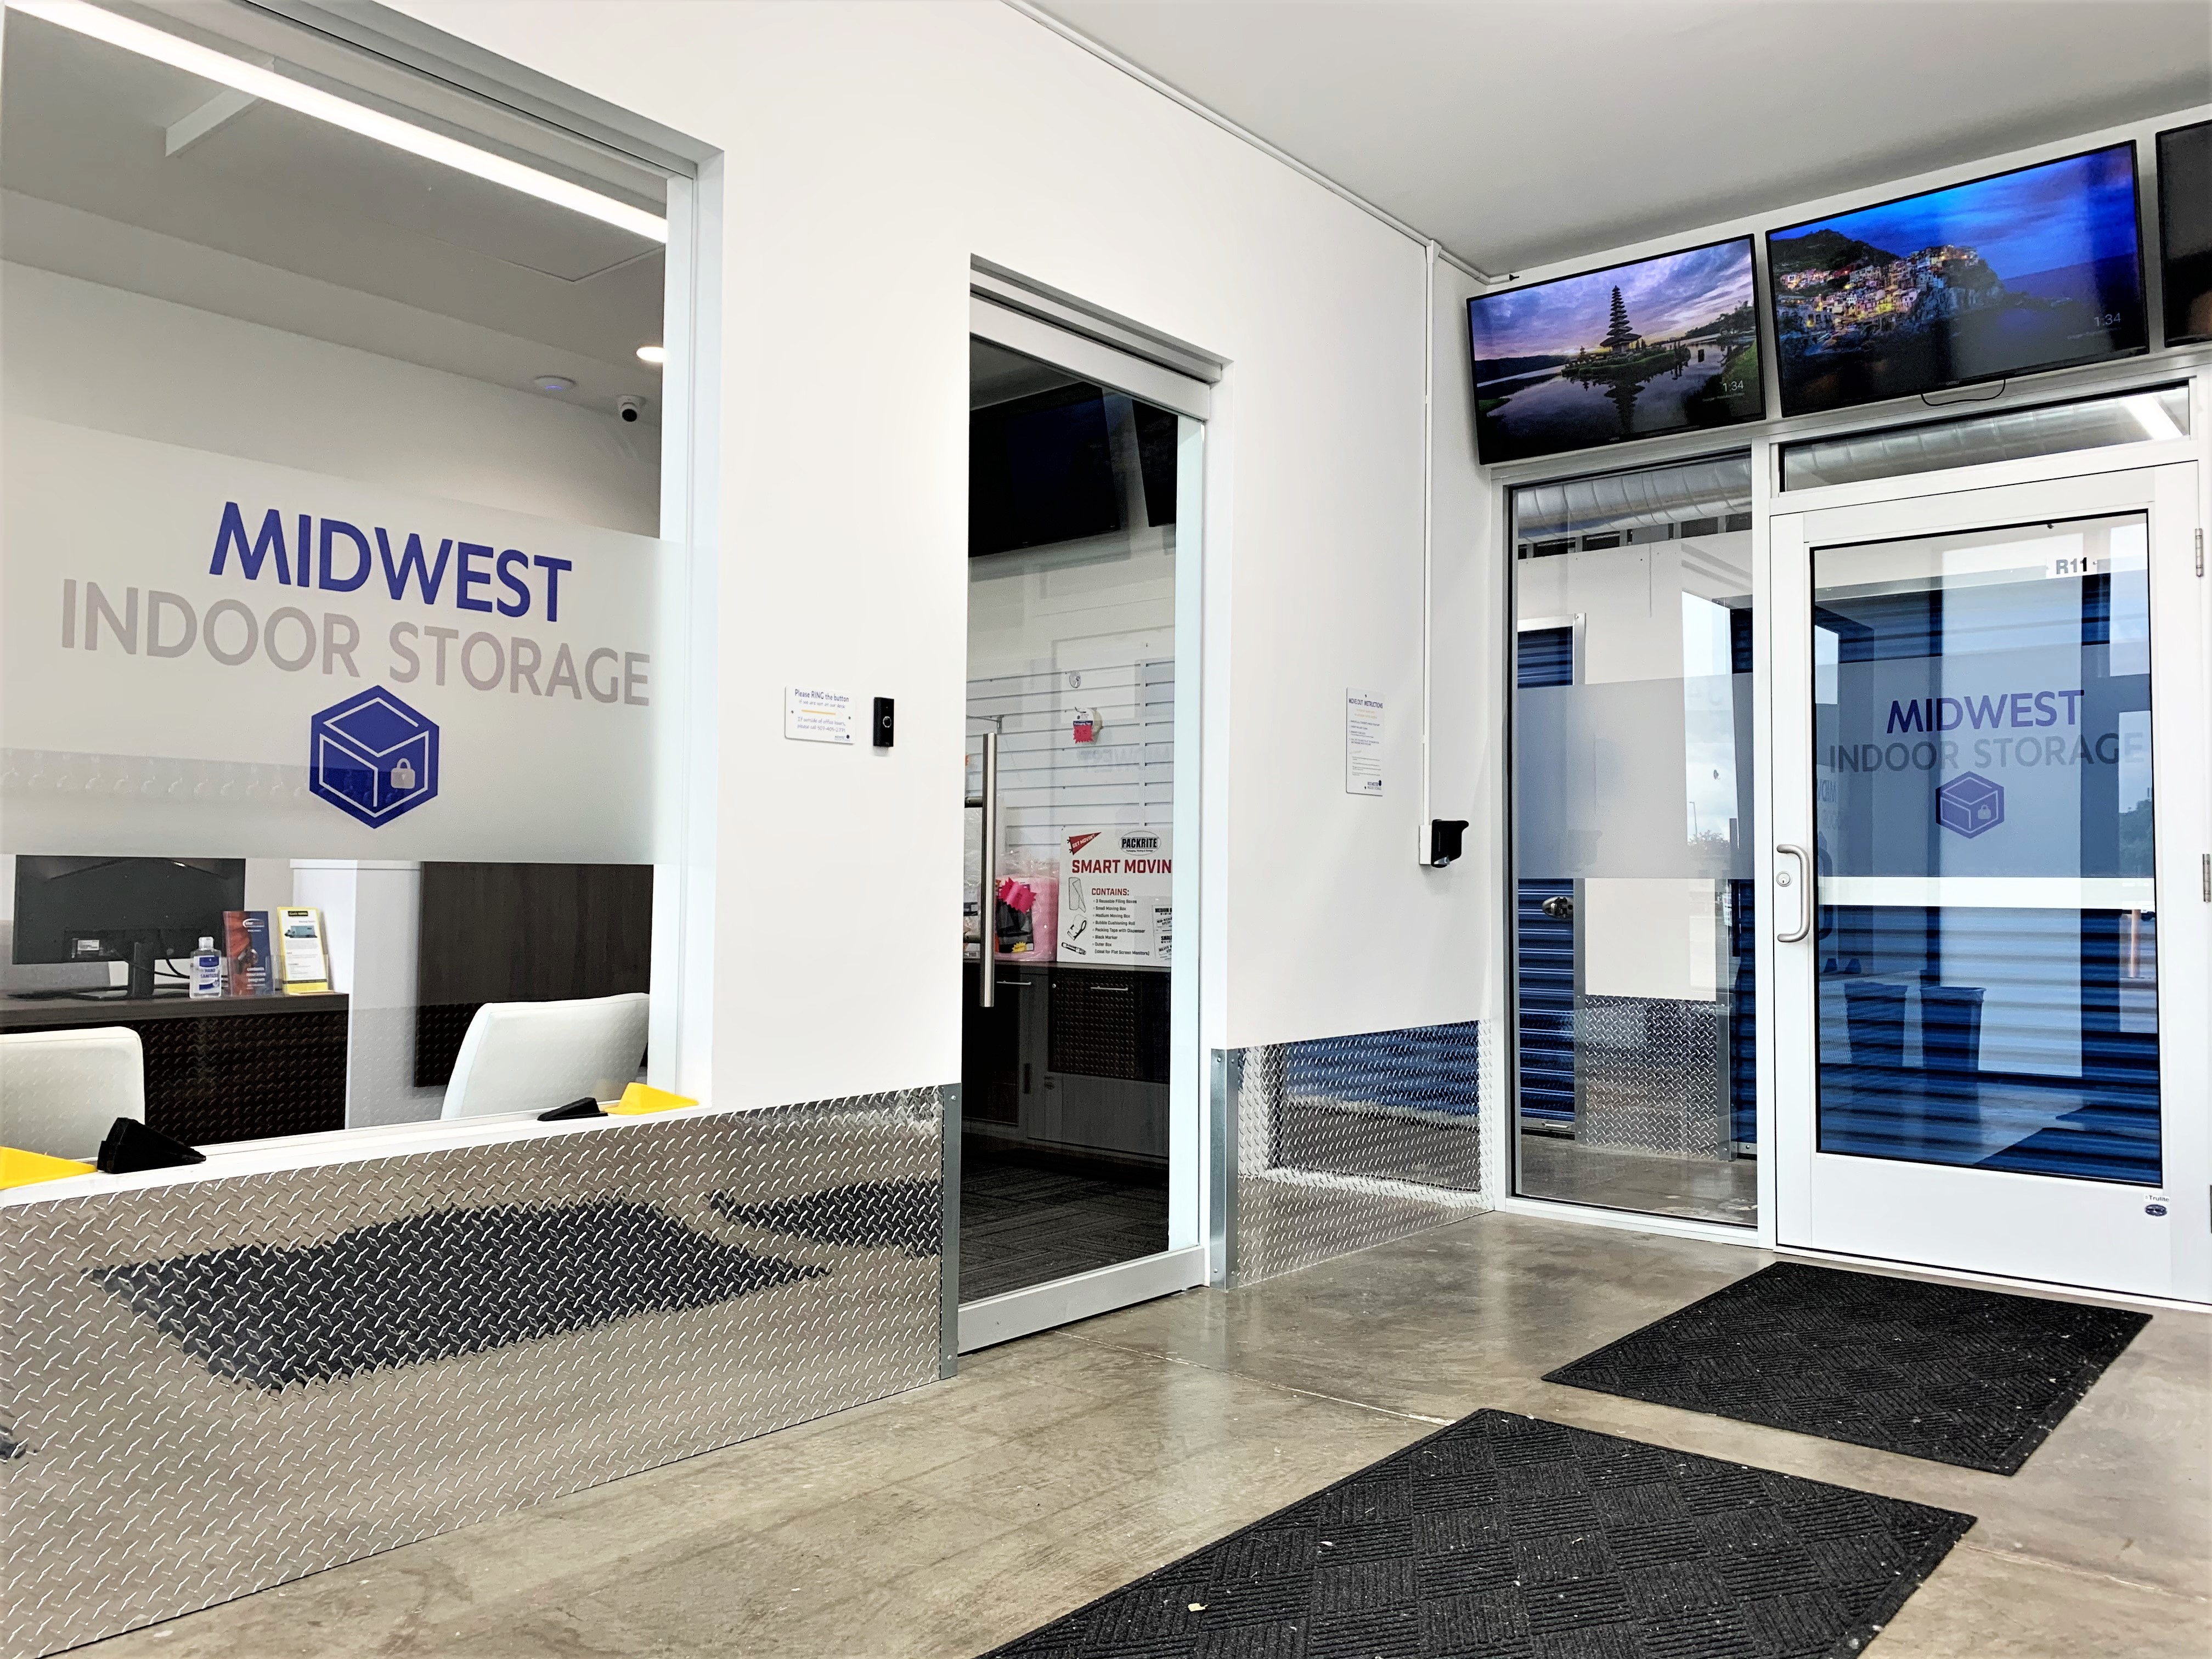 front entrance and office to midwest indoor storage